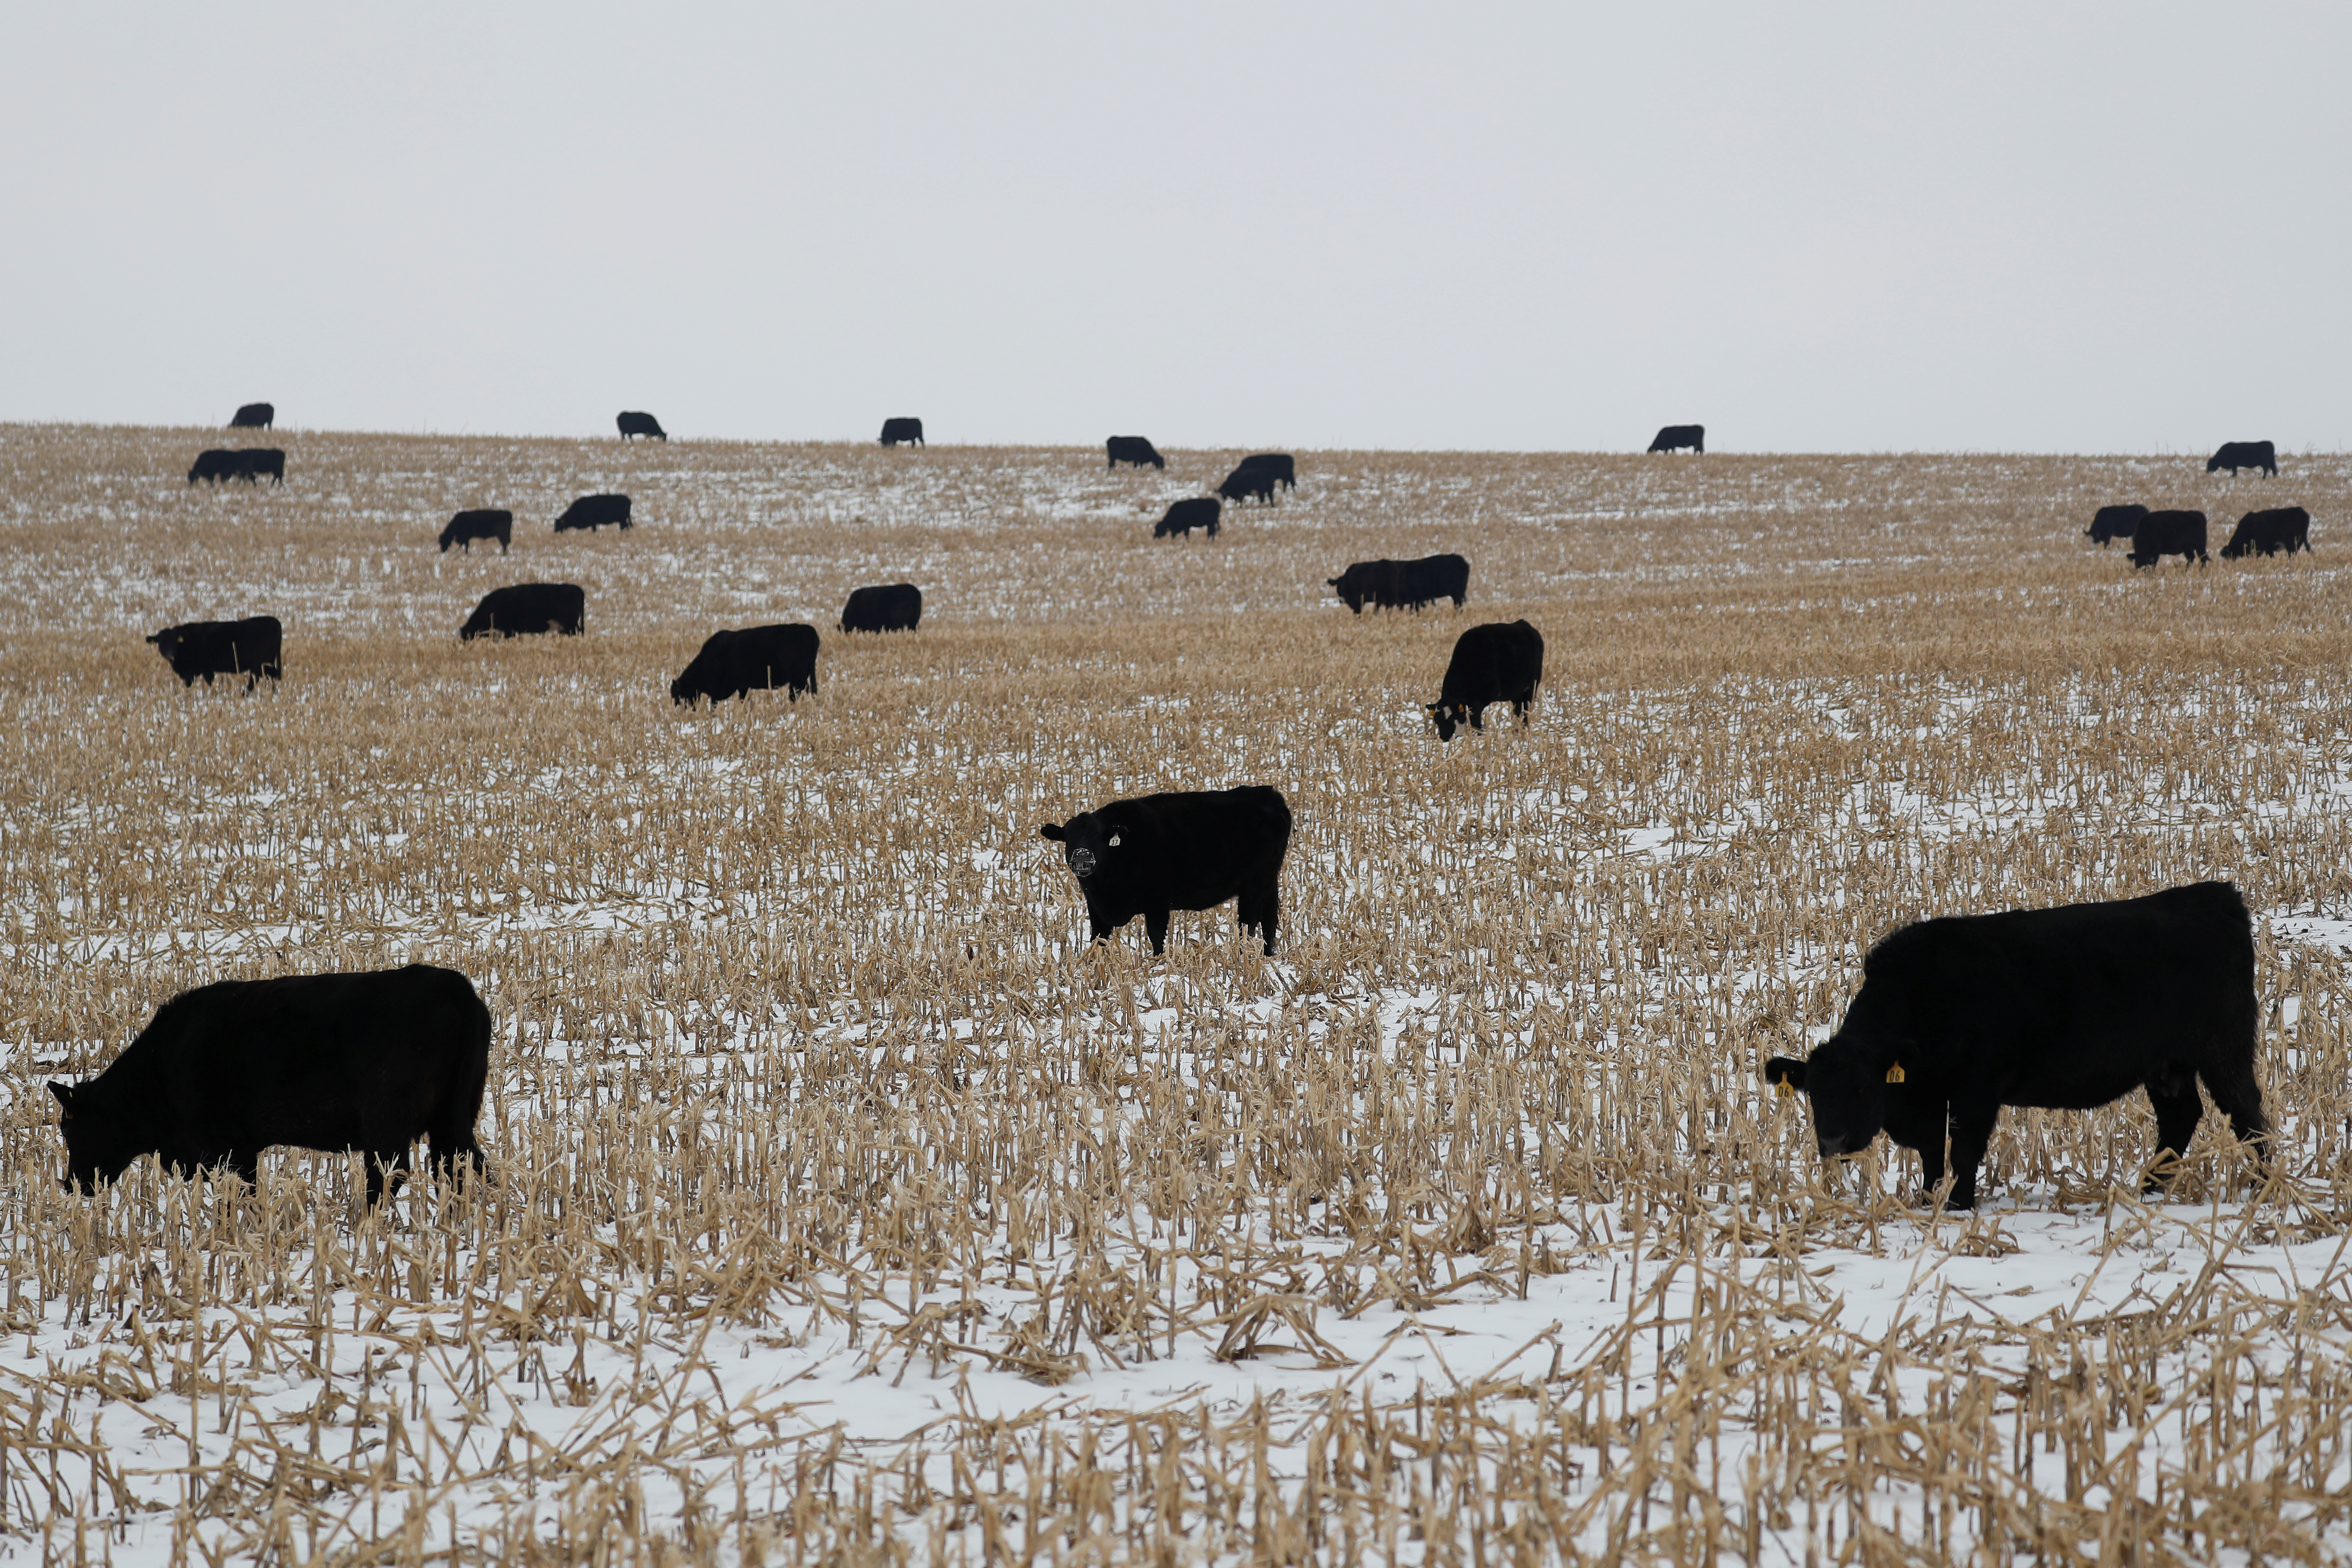 Cattle graze in a snow-covered cornfield near Newburg, Iowa, U.S. January 15, 2020. REUTERS/Shannon Stapleton - RC2MGE9PPO7O